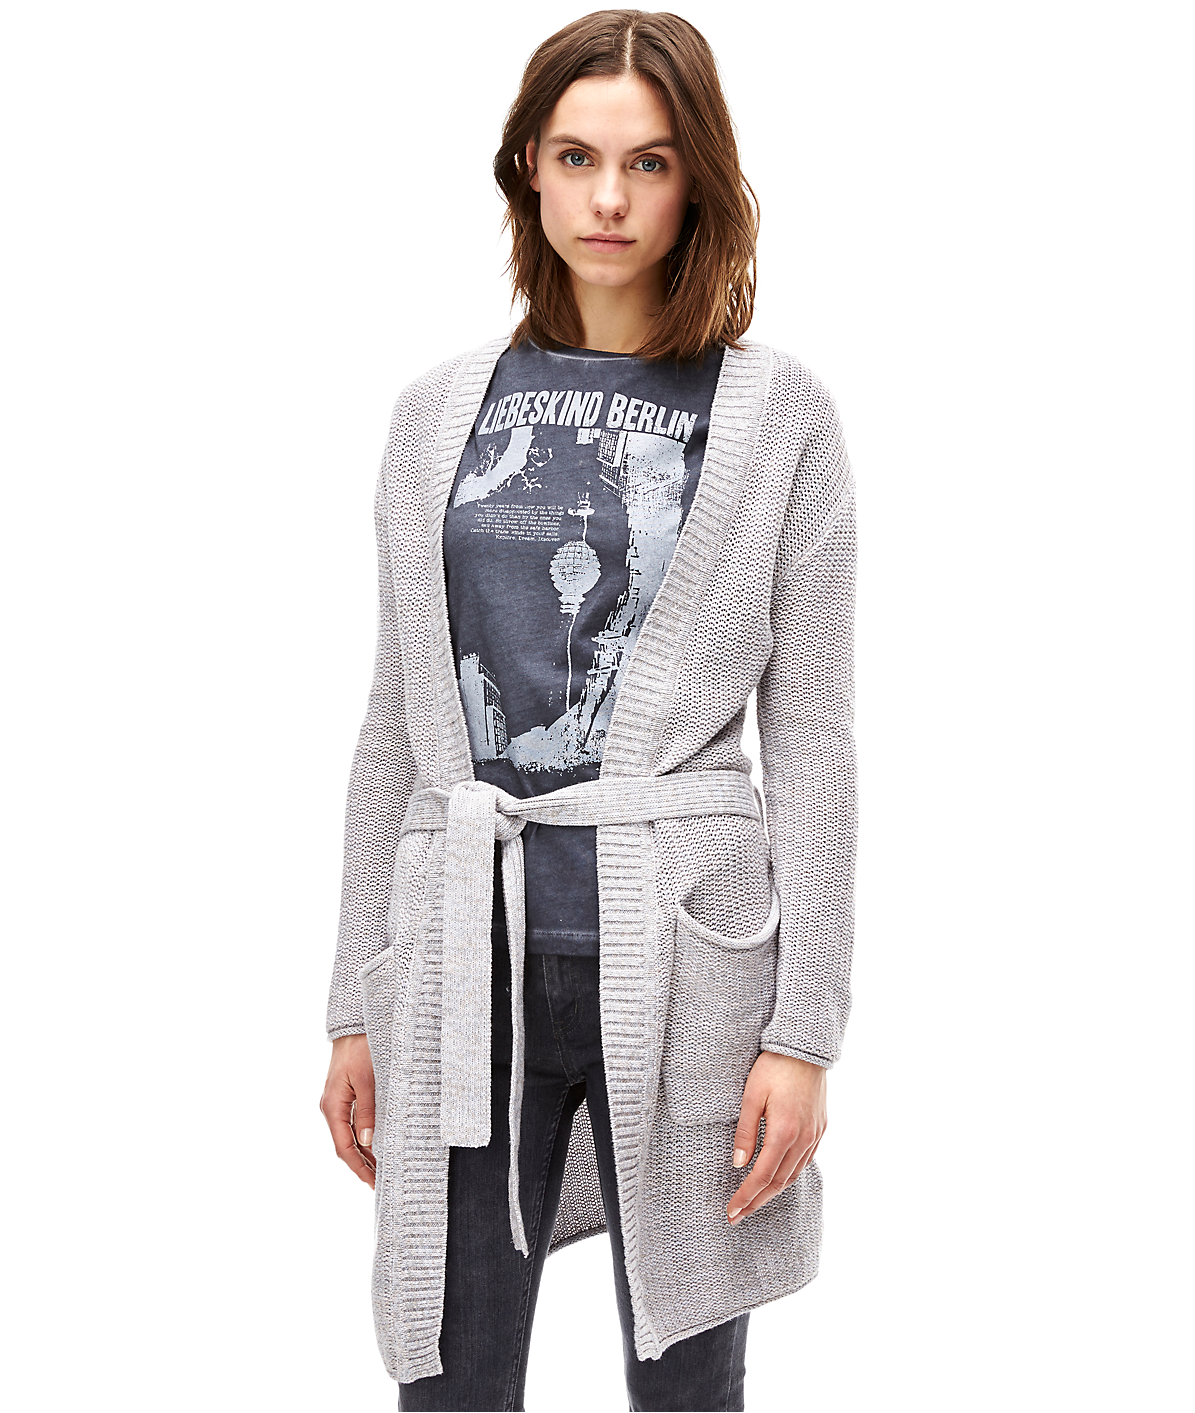 Cardigan in a mottled black & white look F1165002 from liebeskind